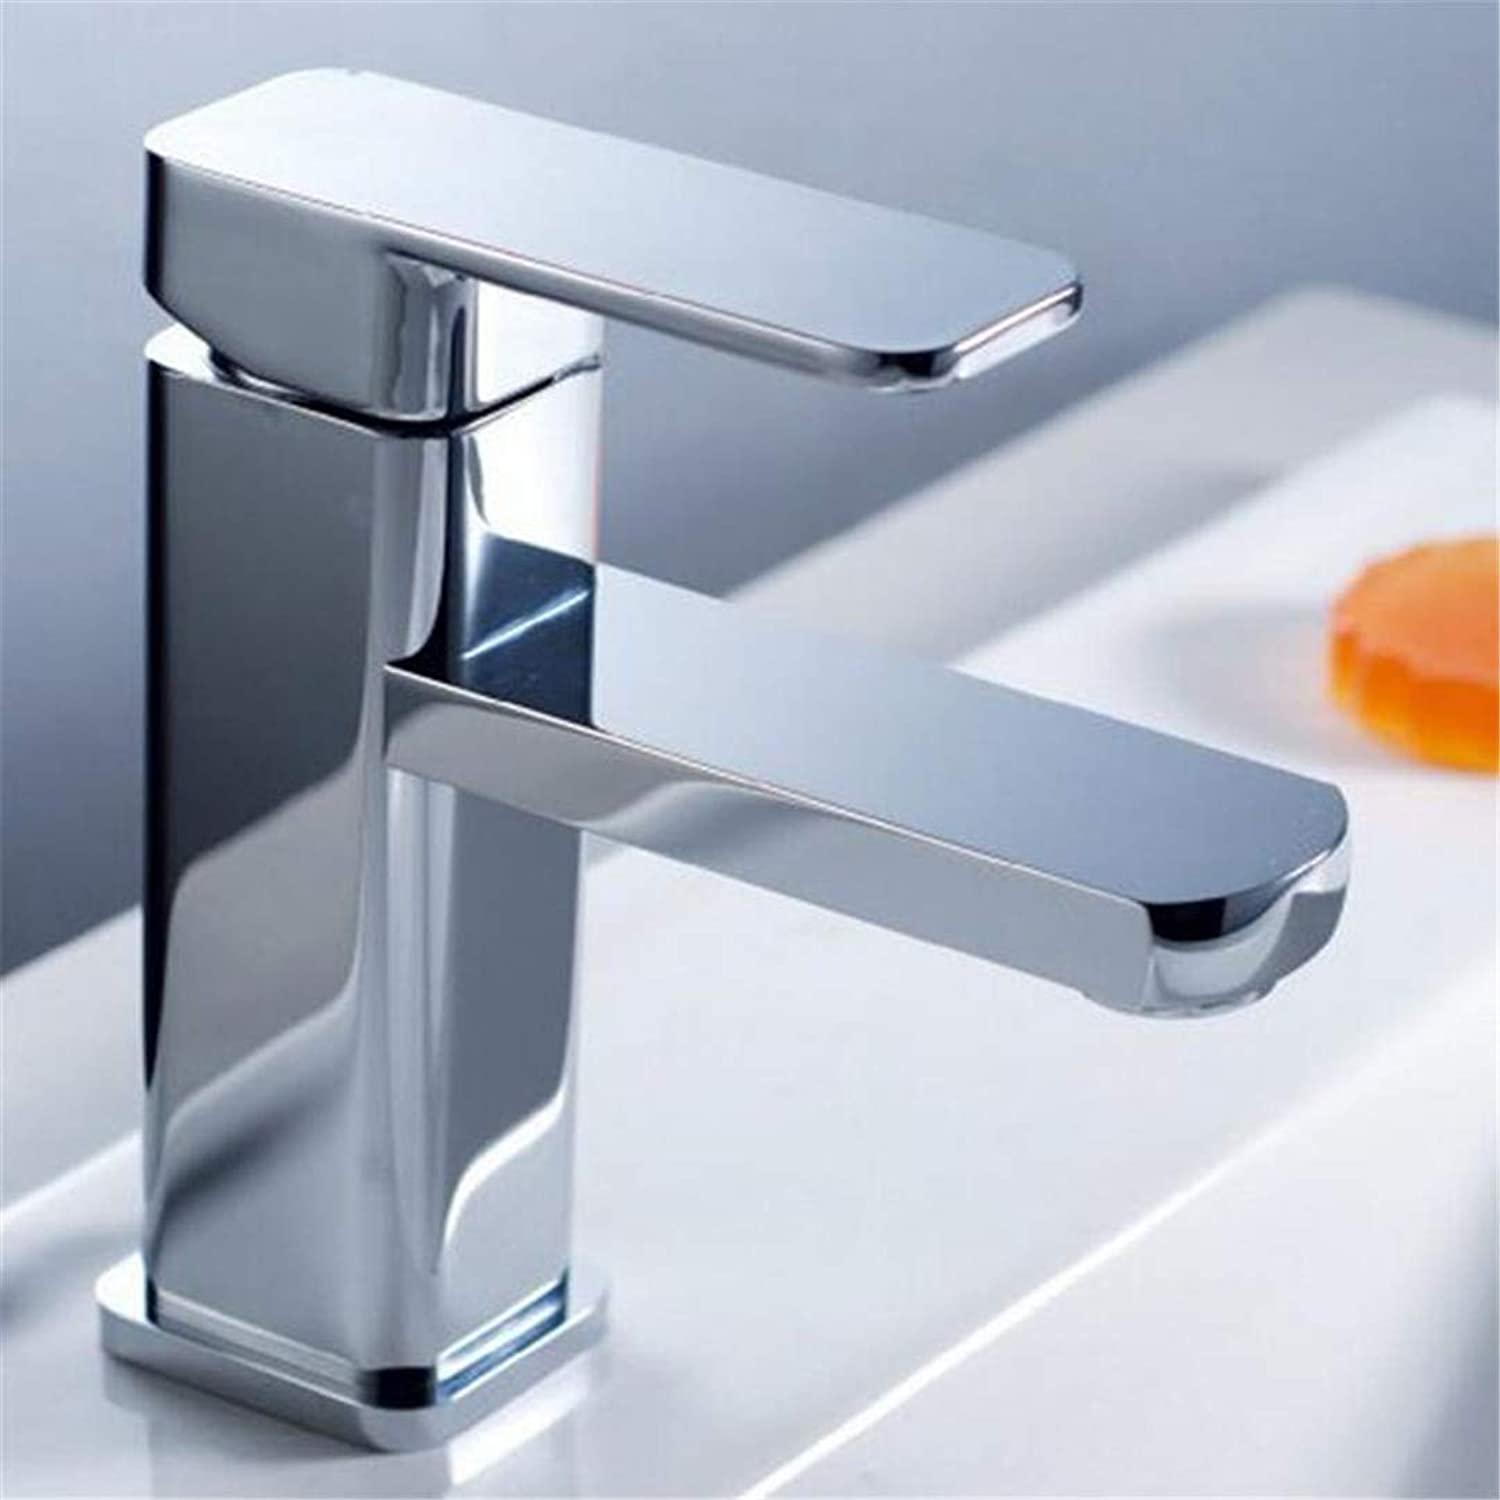 Bathroom Sink Bath Faucet Brass Wash Table Washbasin Basin Bathroom Cabinet Square Single Hole Basin Faucet Cold and Hot Faucet.